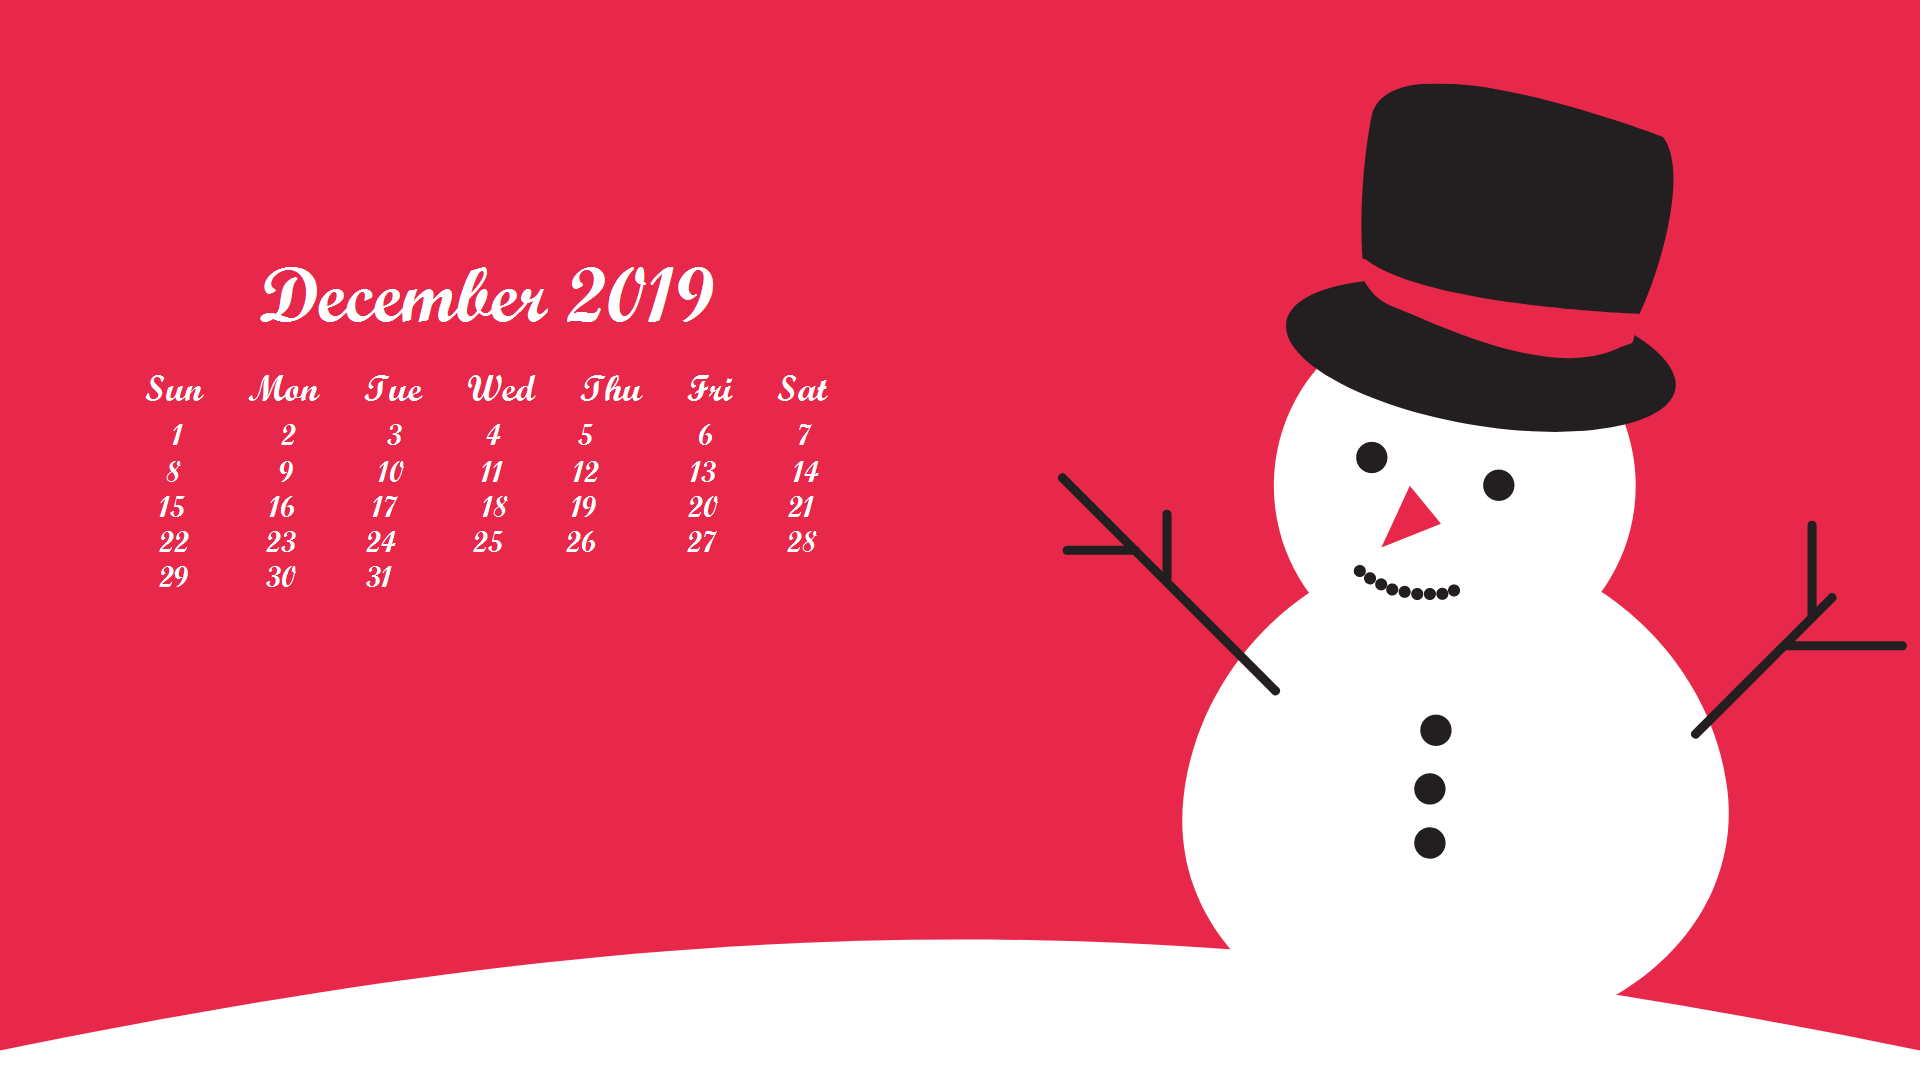 December 2019 Calendar HD Wallpaper for Desktop 1920x1080